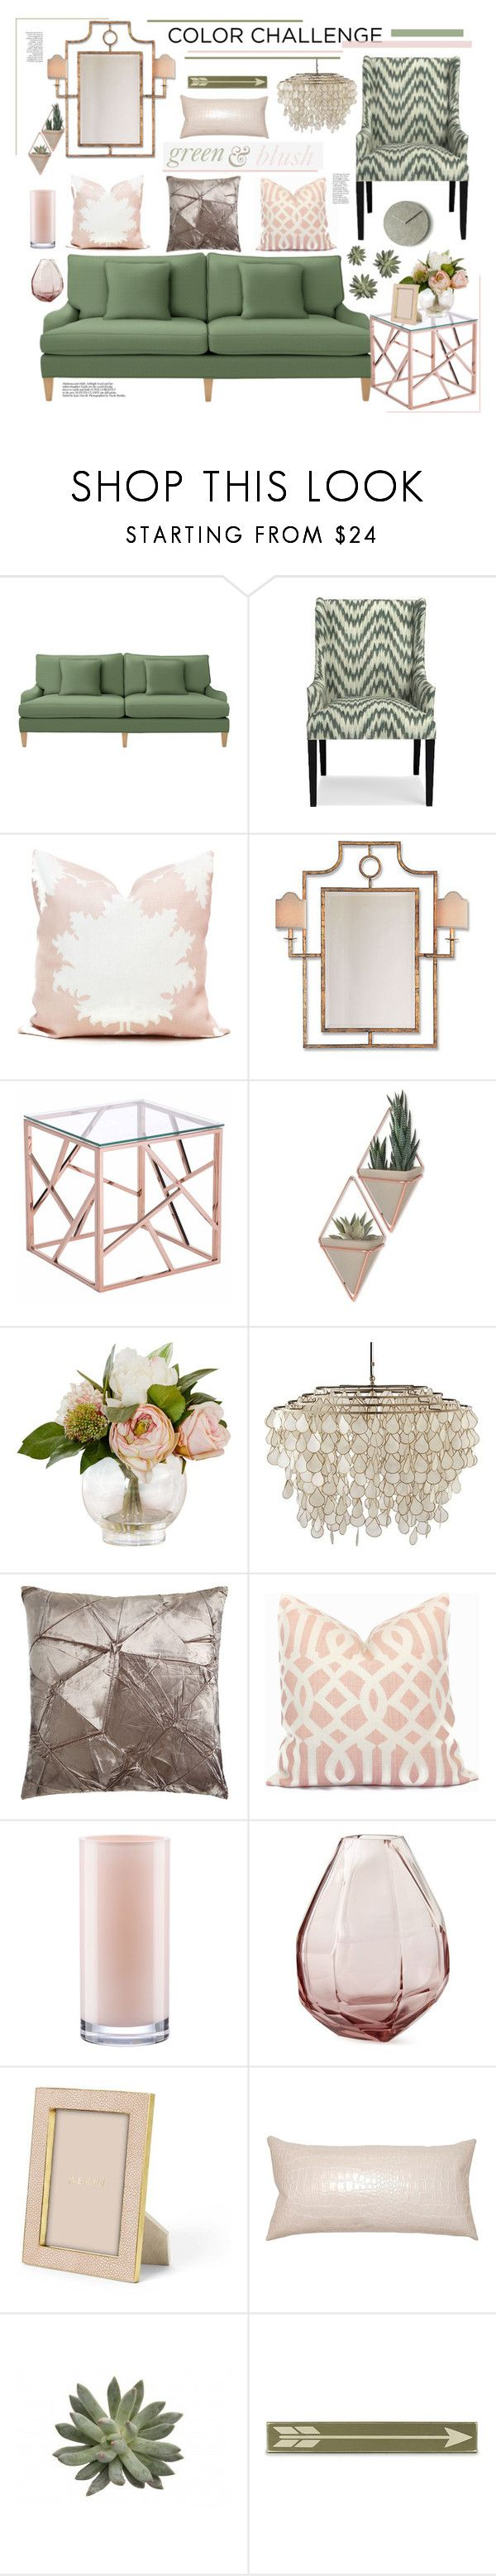 """""""Earthy, Pretty."""" by sierrrrrra ❤ liked on Polyvore featuring interior, interiors, interior design, home, home decor, interior decorating, Serena & Lily, Williams-Sonoma, Port 68 and Zuo"""